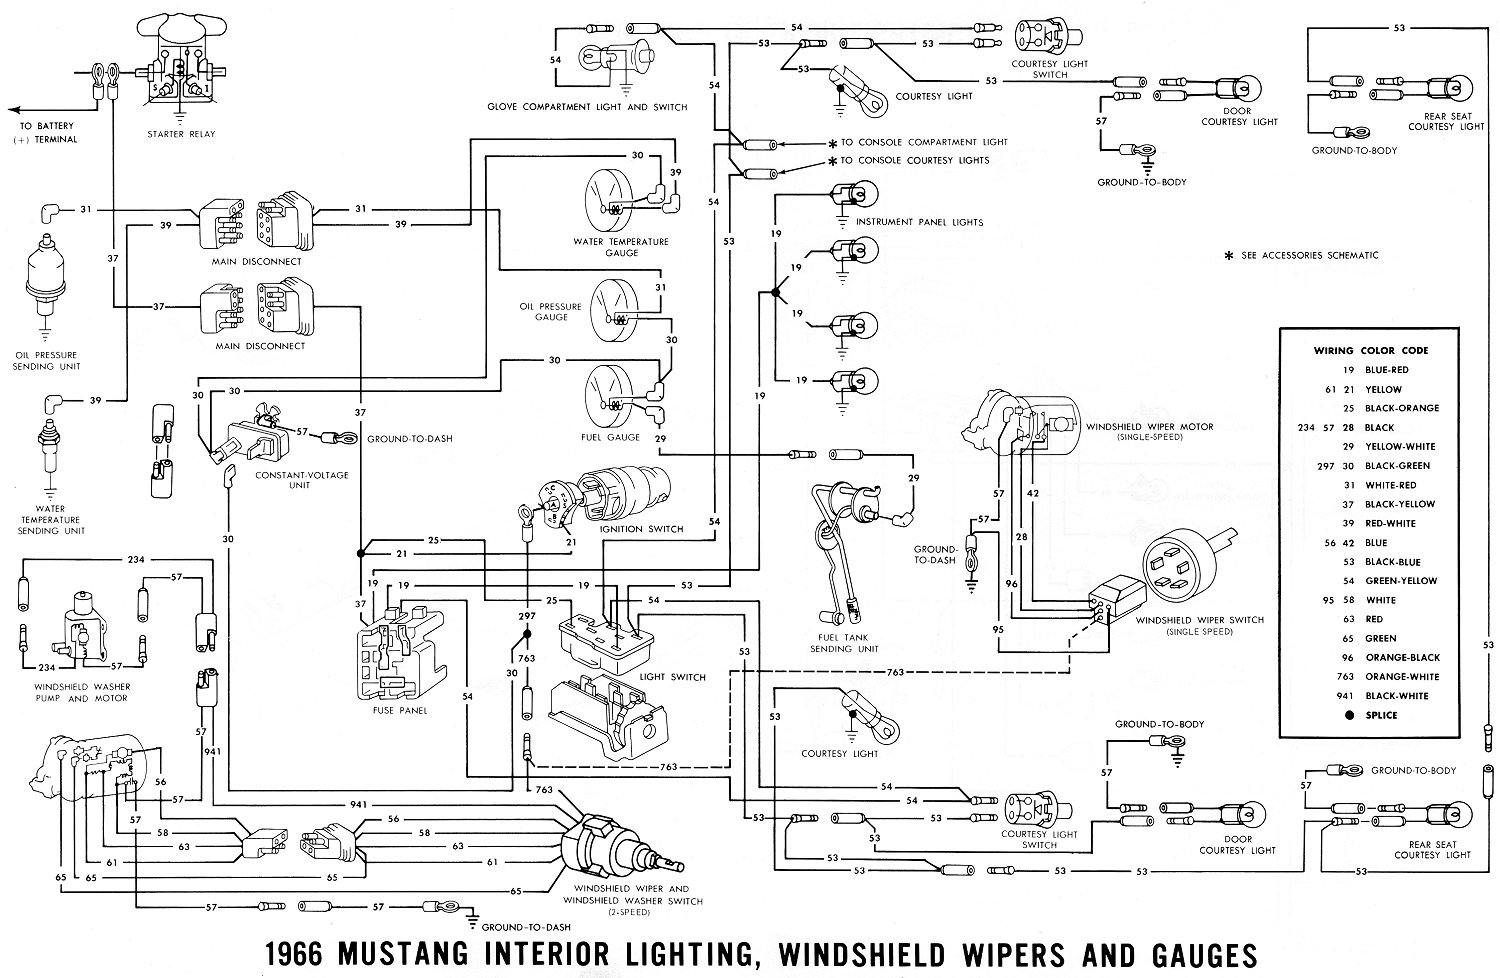 66inter1 1966 mustang wiring diagrams average joe restoration 1965 mustang wiring harness diagram at fashall.co